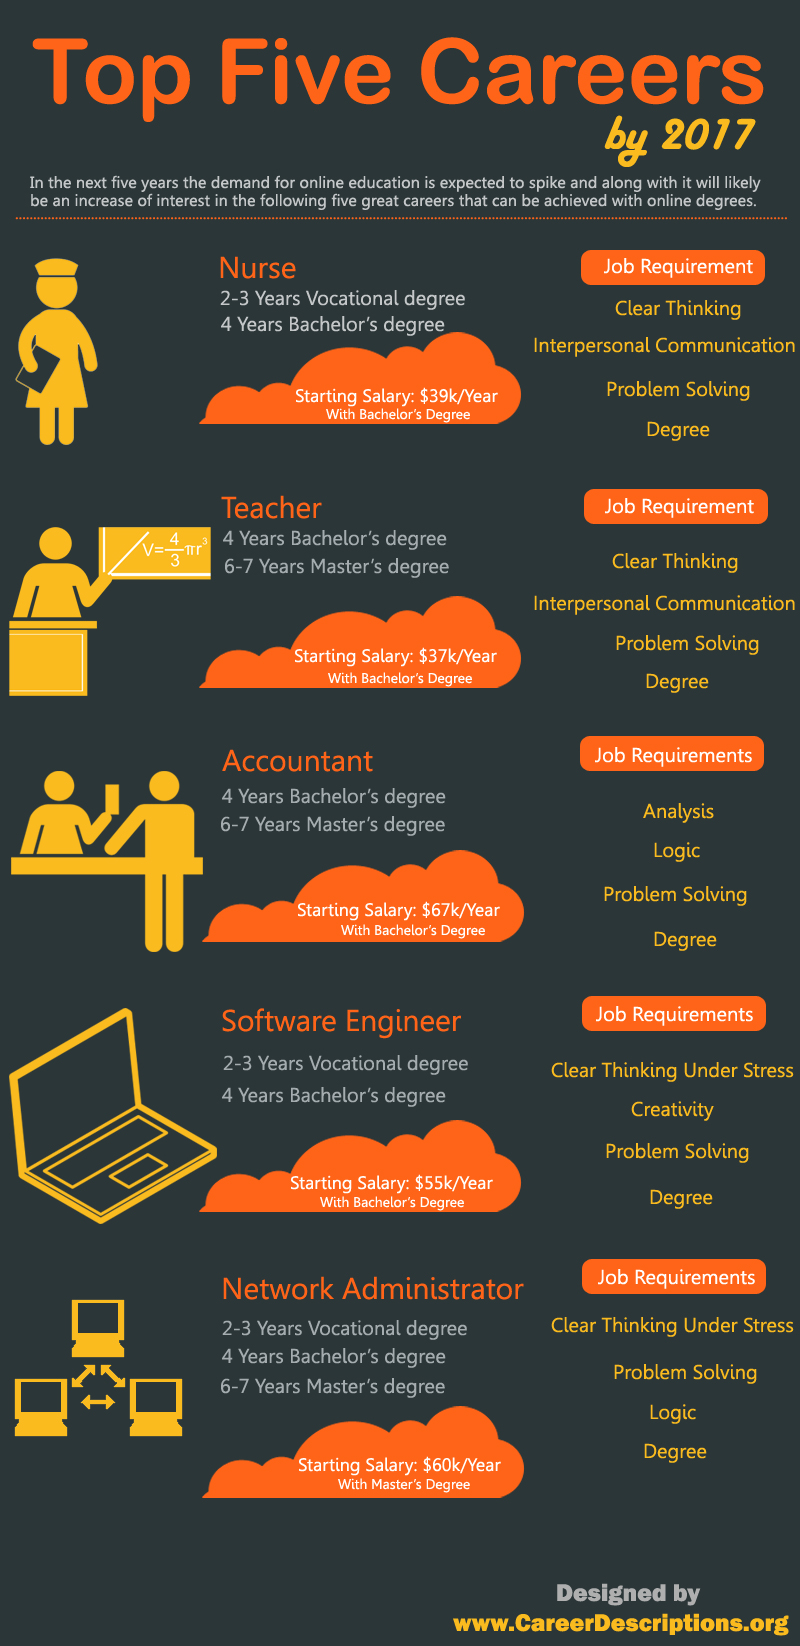 top-five-careers-by-2017-infographic_509a57828c203